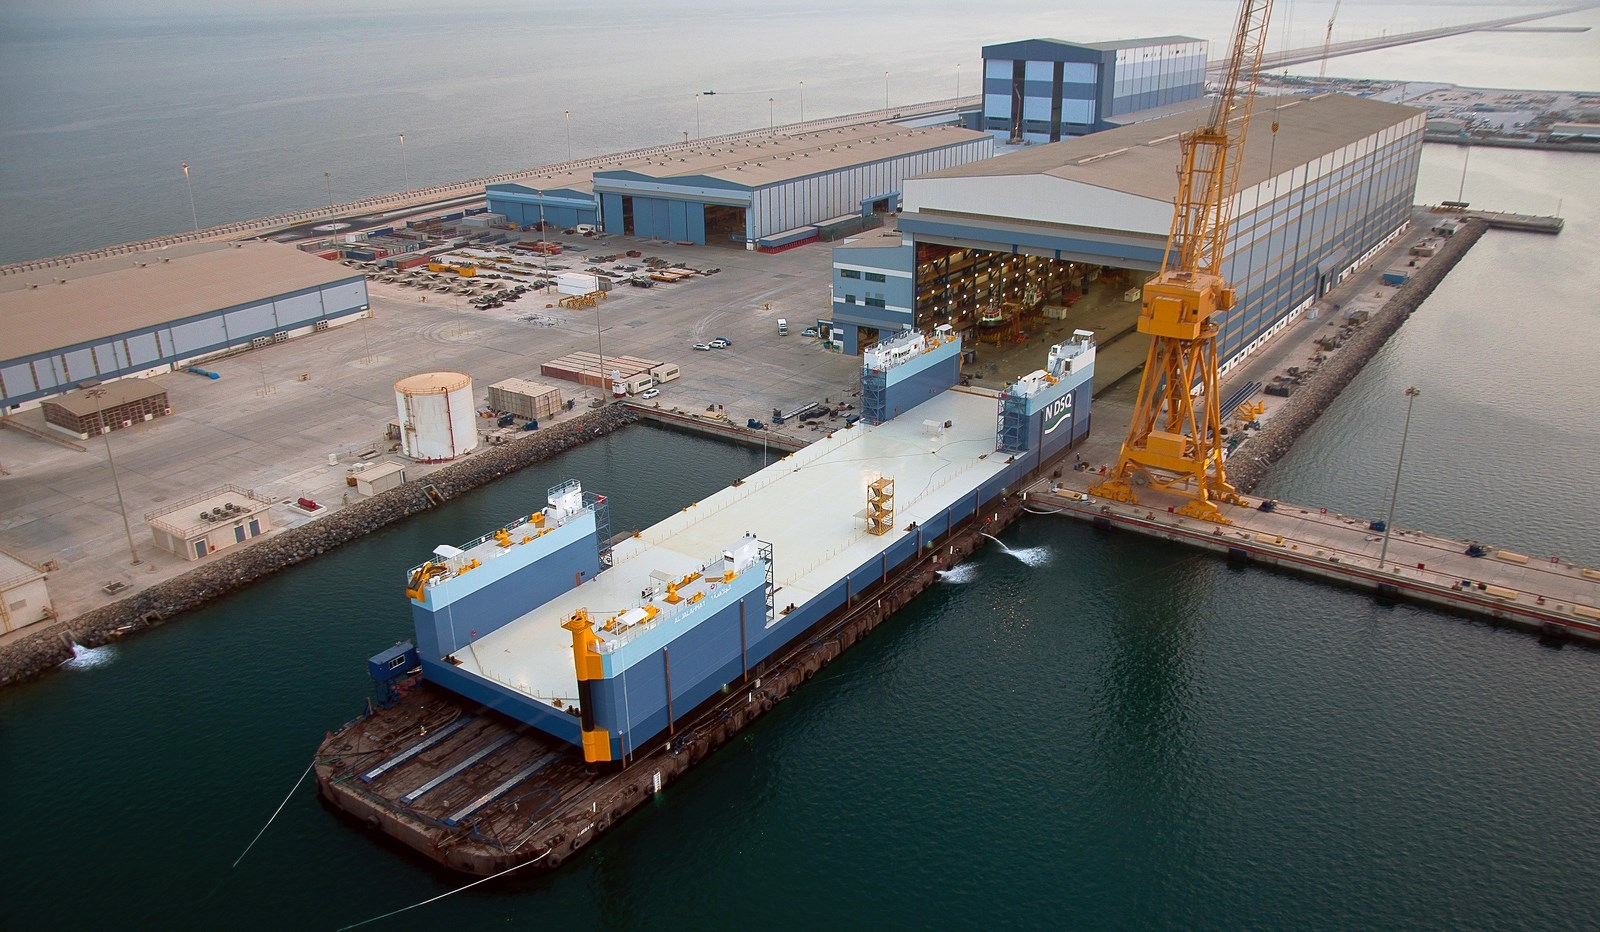 13,000 TONNES LIFTING CAPACITY